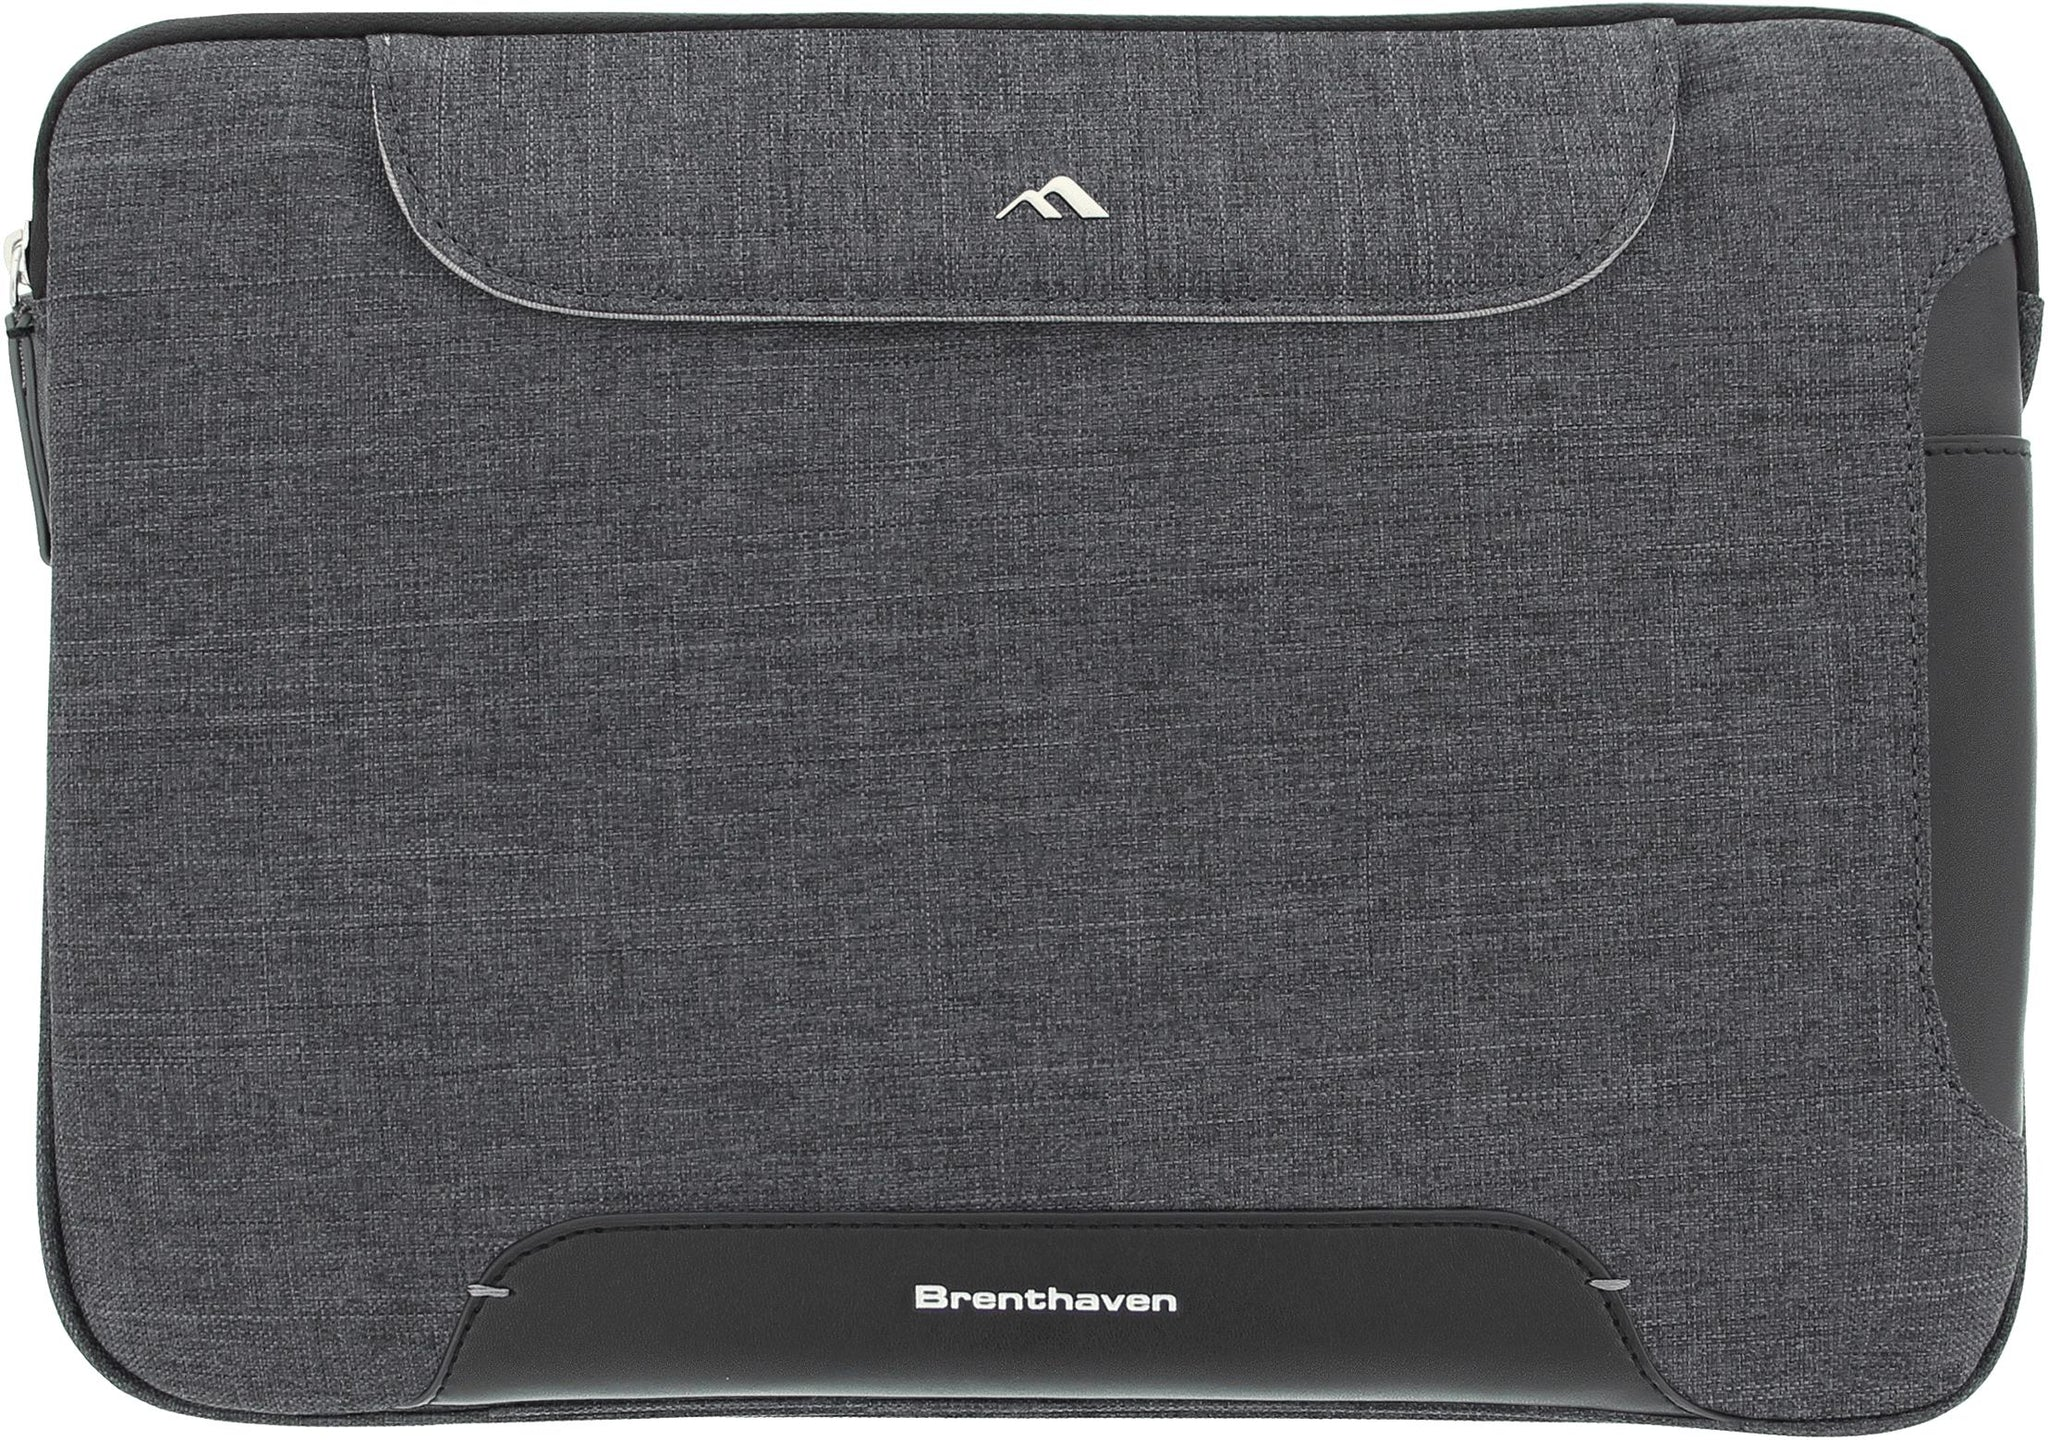 Brenthaven Collins Indigo Sleeve Plus for Surface Pro and Surface Book Refurbished